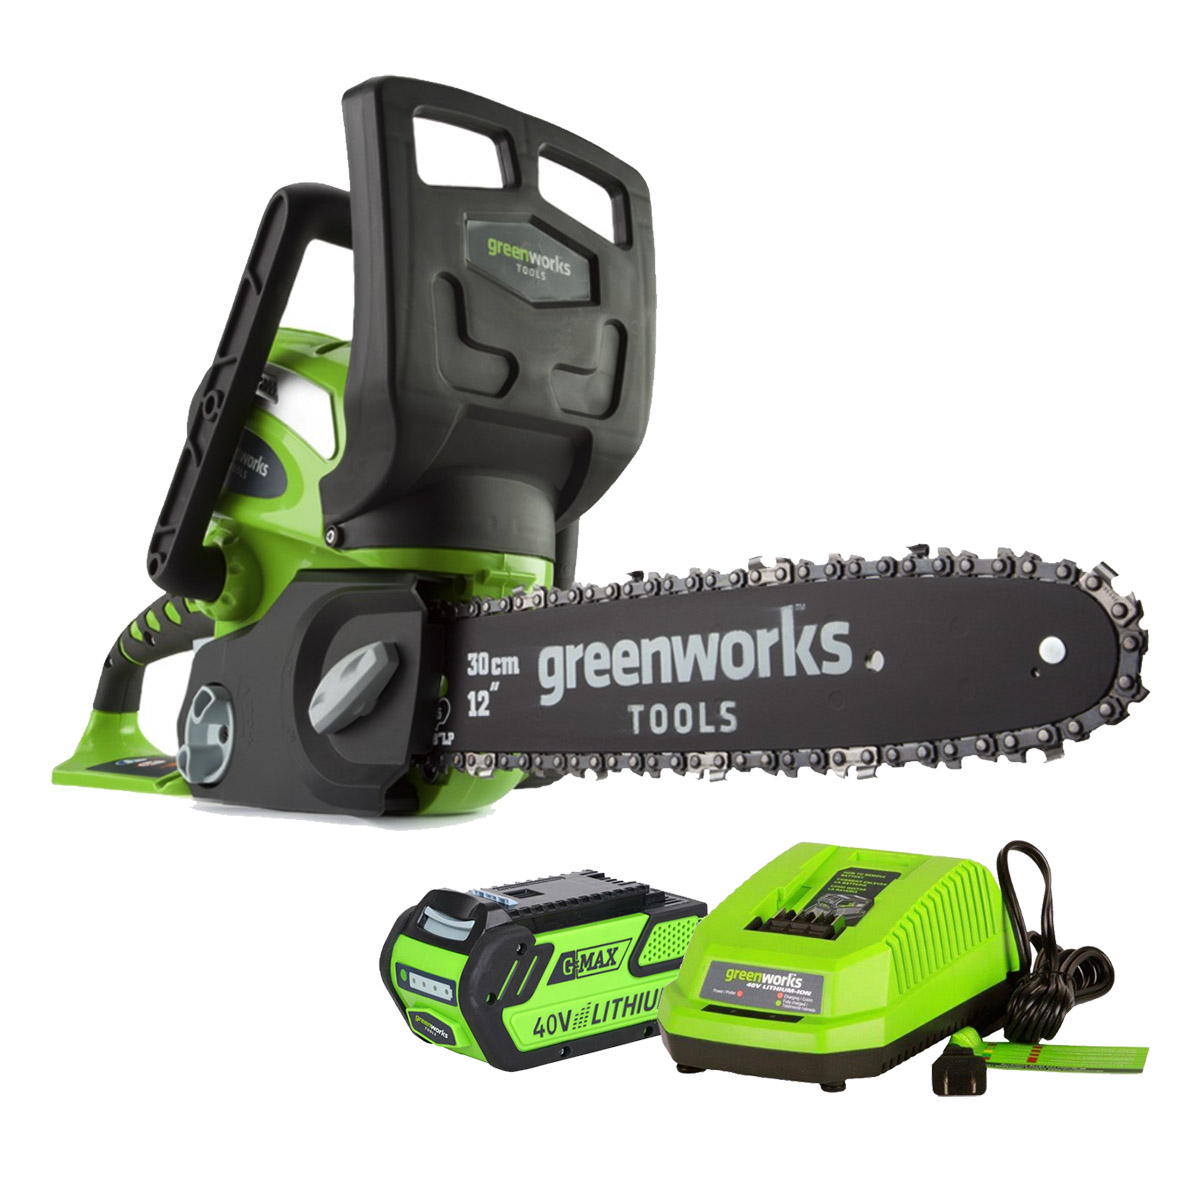 Saw chain rechargeable GreenWorks G40CS30 40V (blade length 300mm, 60 minutes of battery life, automatic lubrication аккумуляторная пила greenworks 40v g40cs30 20117